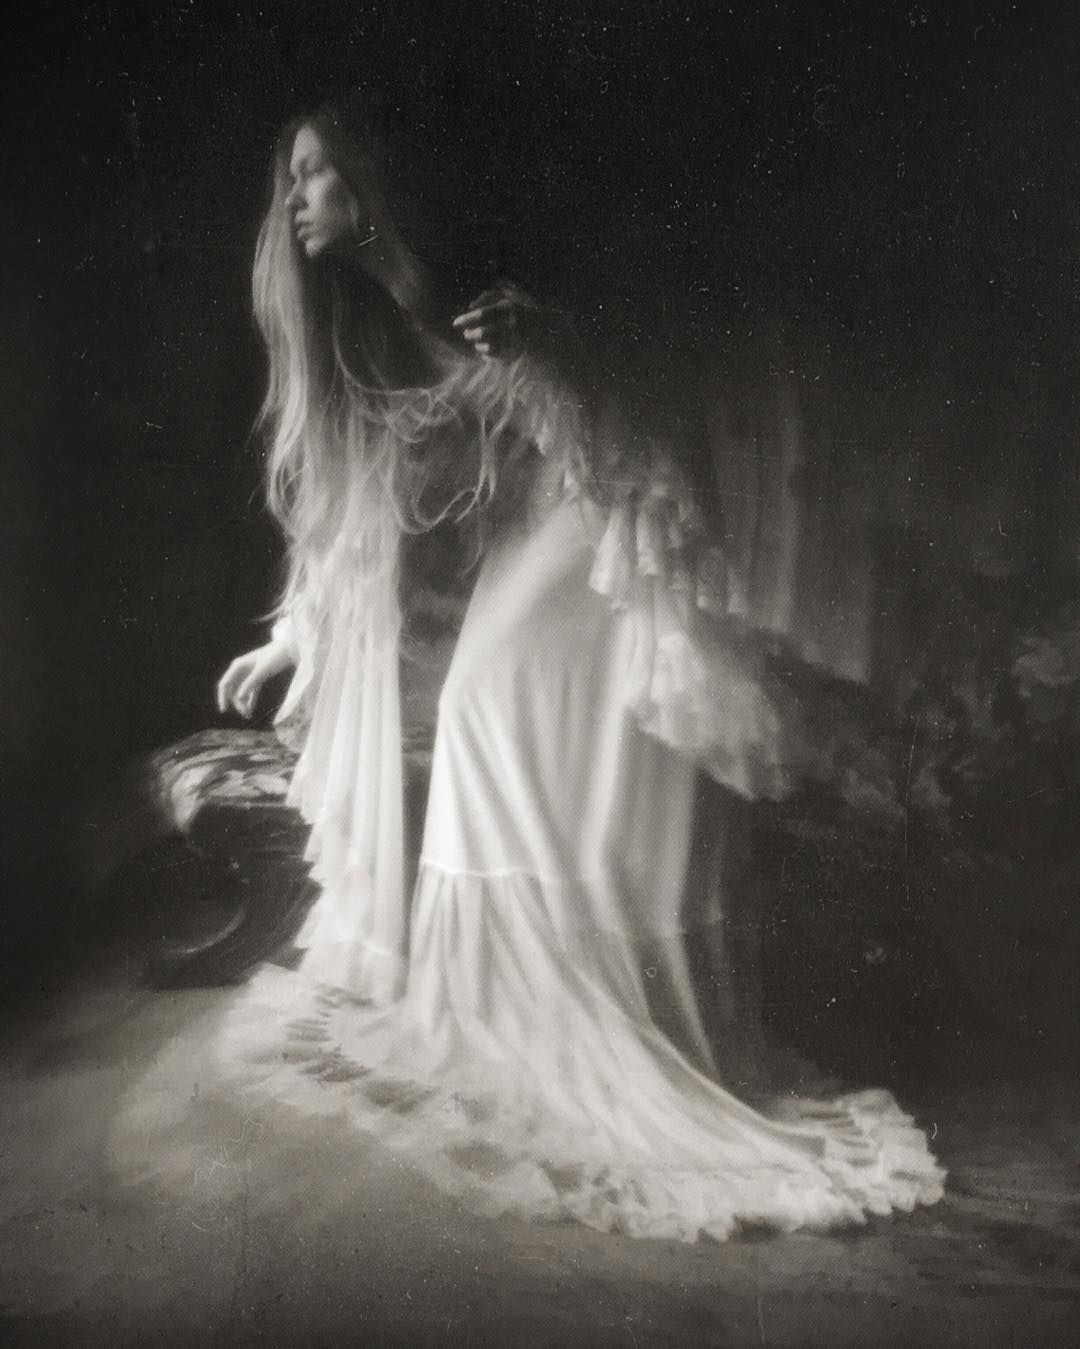 Gorgeously Mysterious, Melancholic and Fine Art Portrait Photography ...